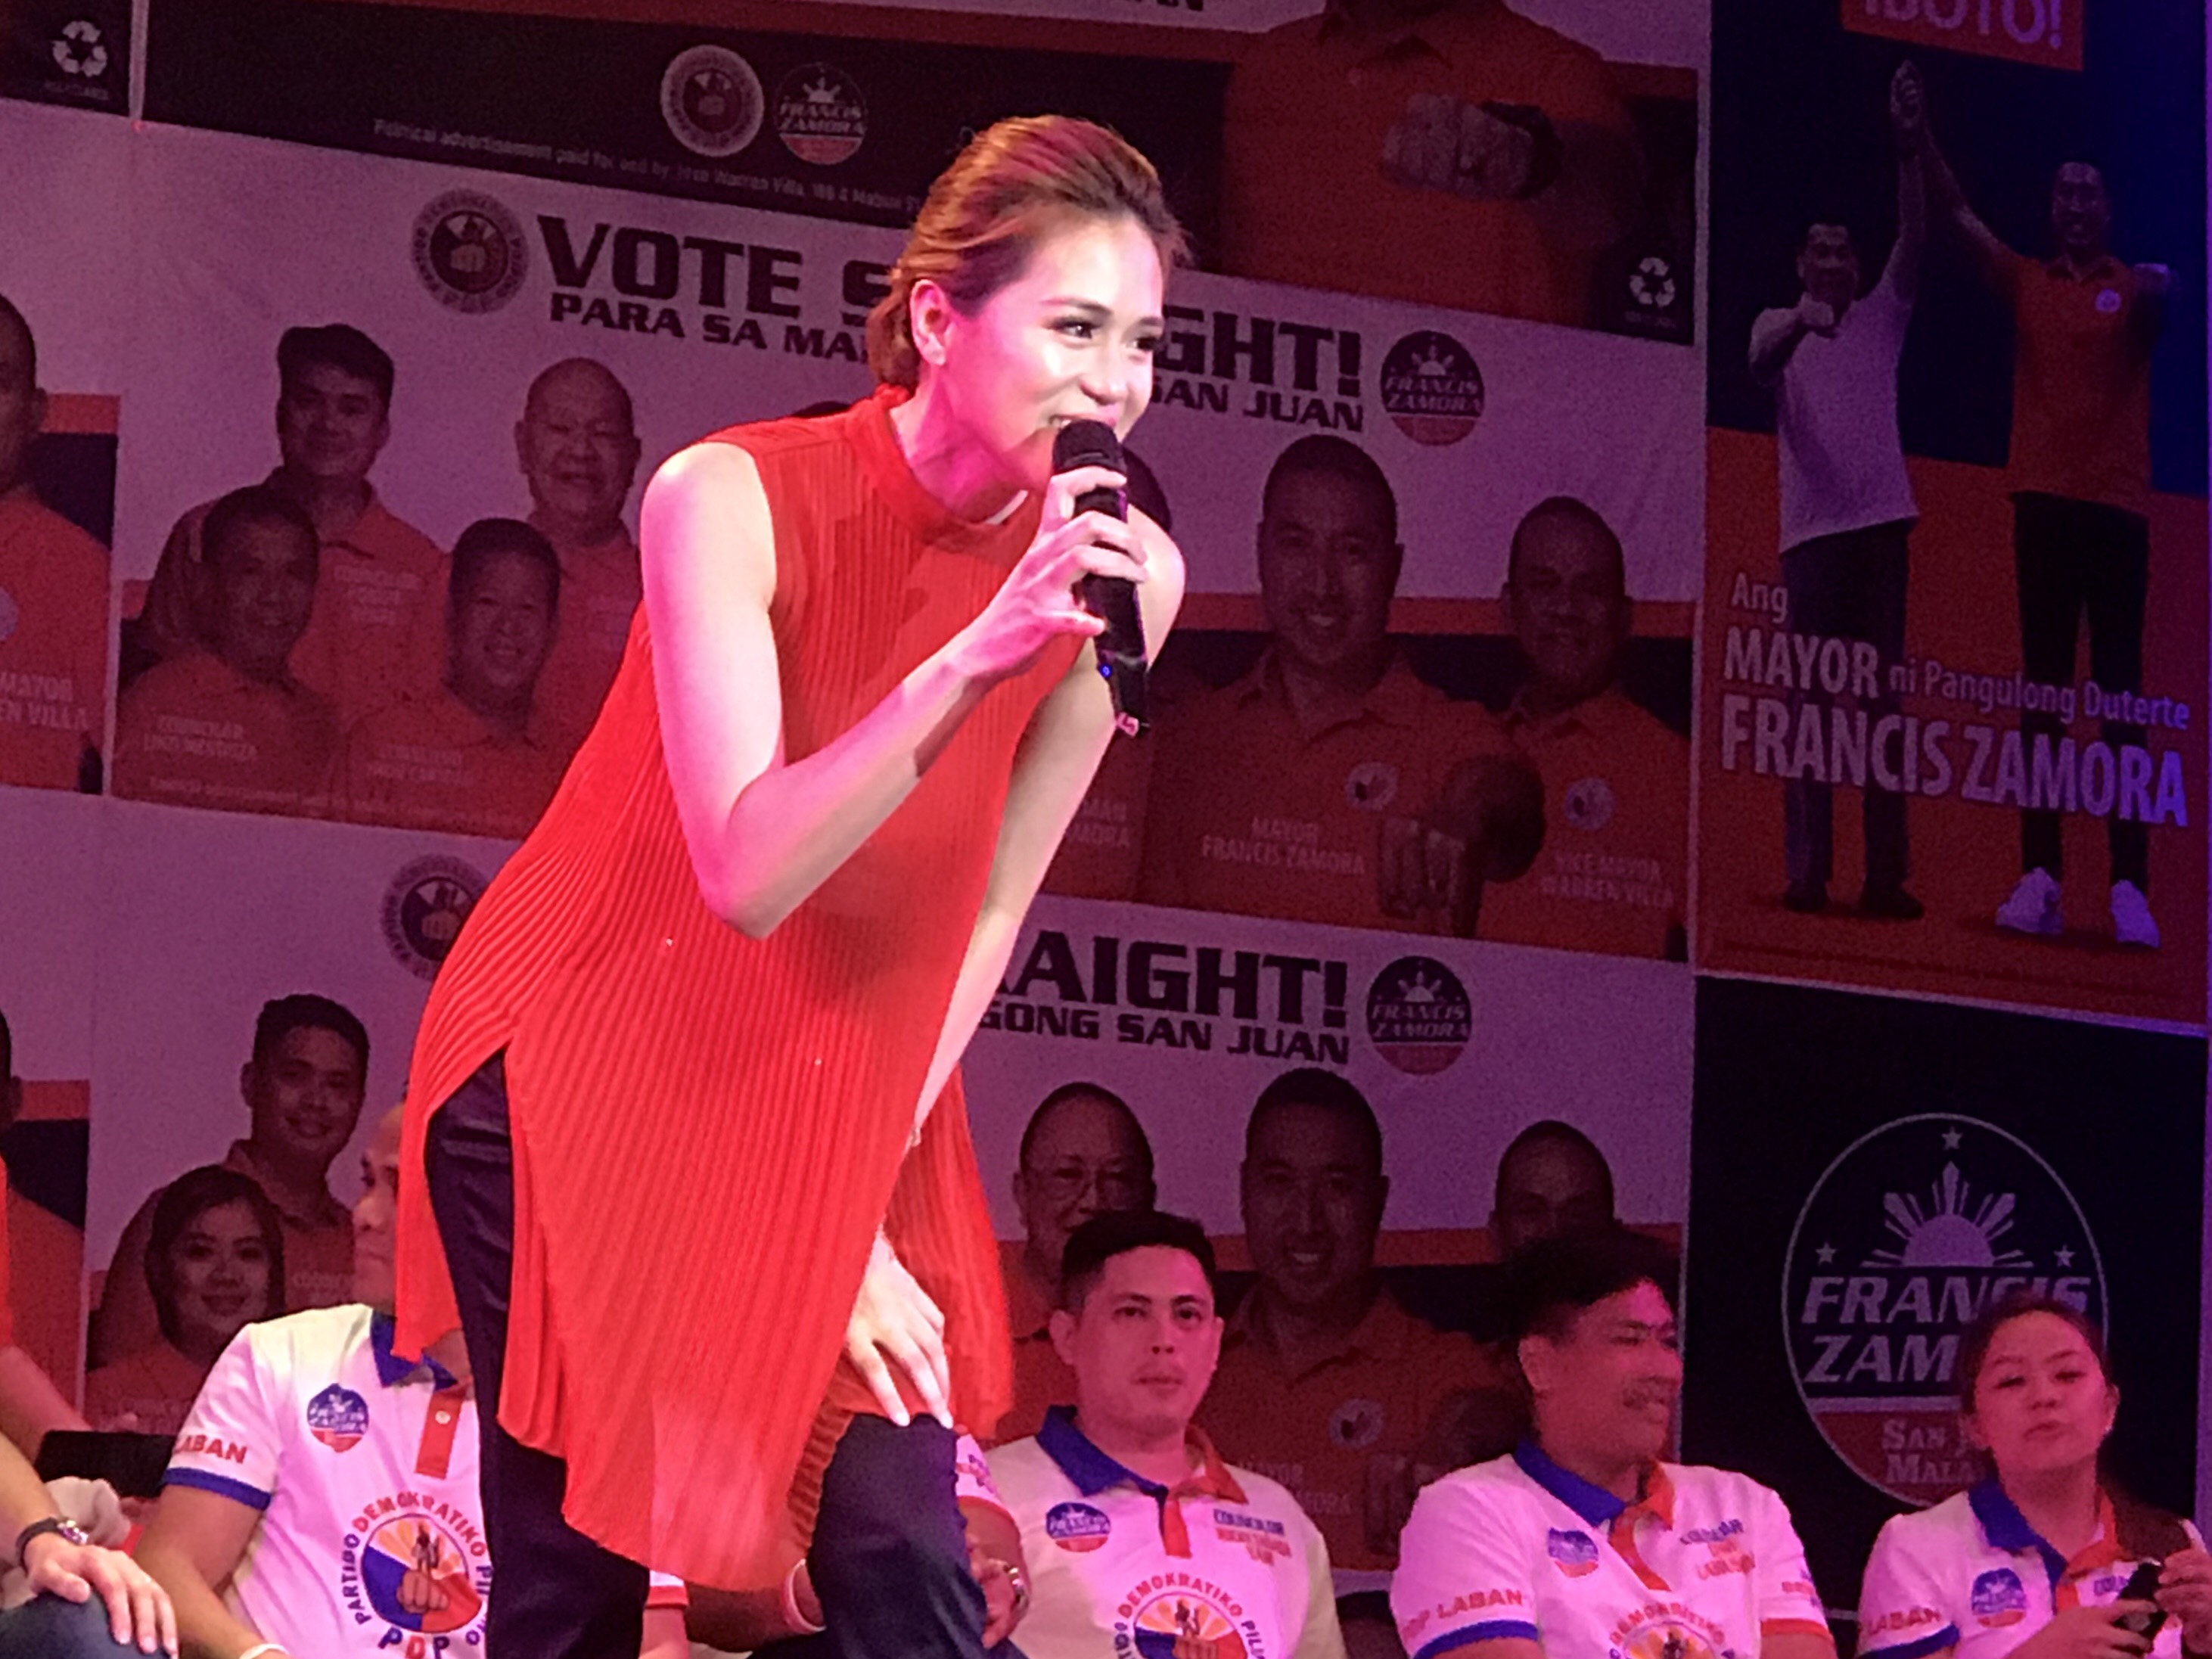 INTERMISSION. Actress and singer Toni Gonzaga stops by the PDP-Laban San Juan campaign kick-off to perform her songs 'We Belong', and 'Catch Me I'm Falling'. Photo by Rambo Talabong/Rappler